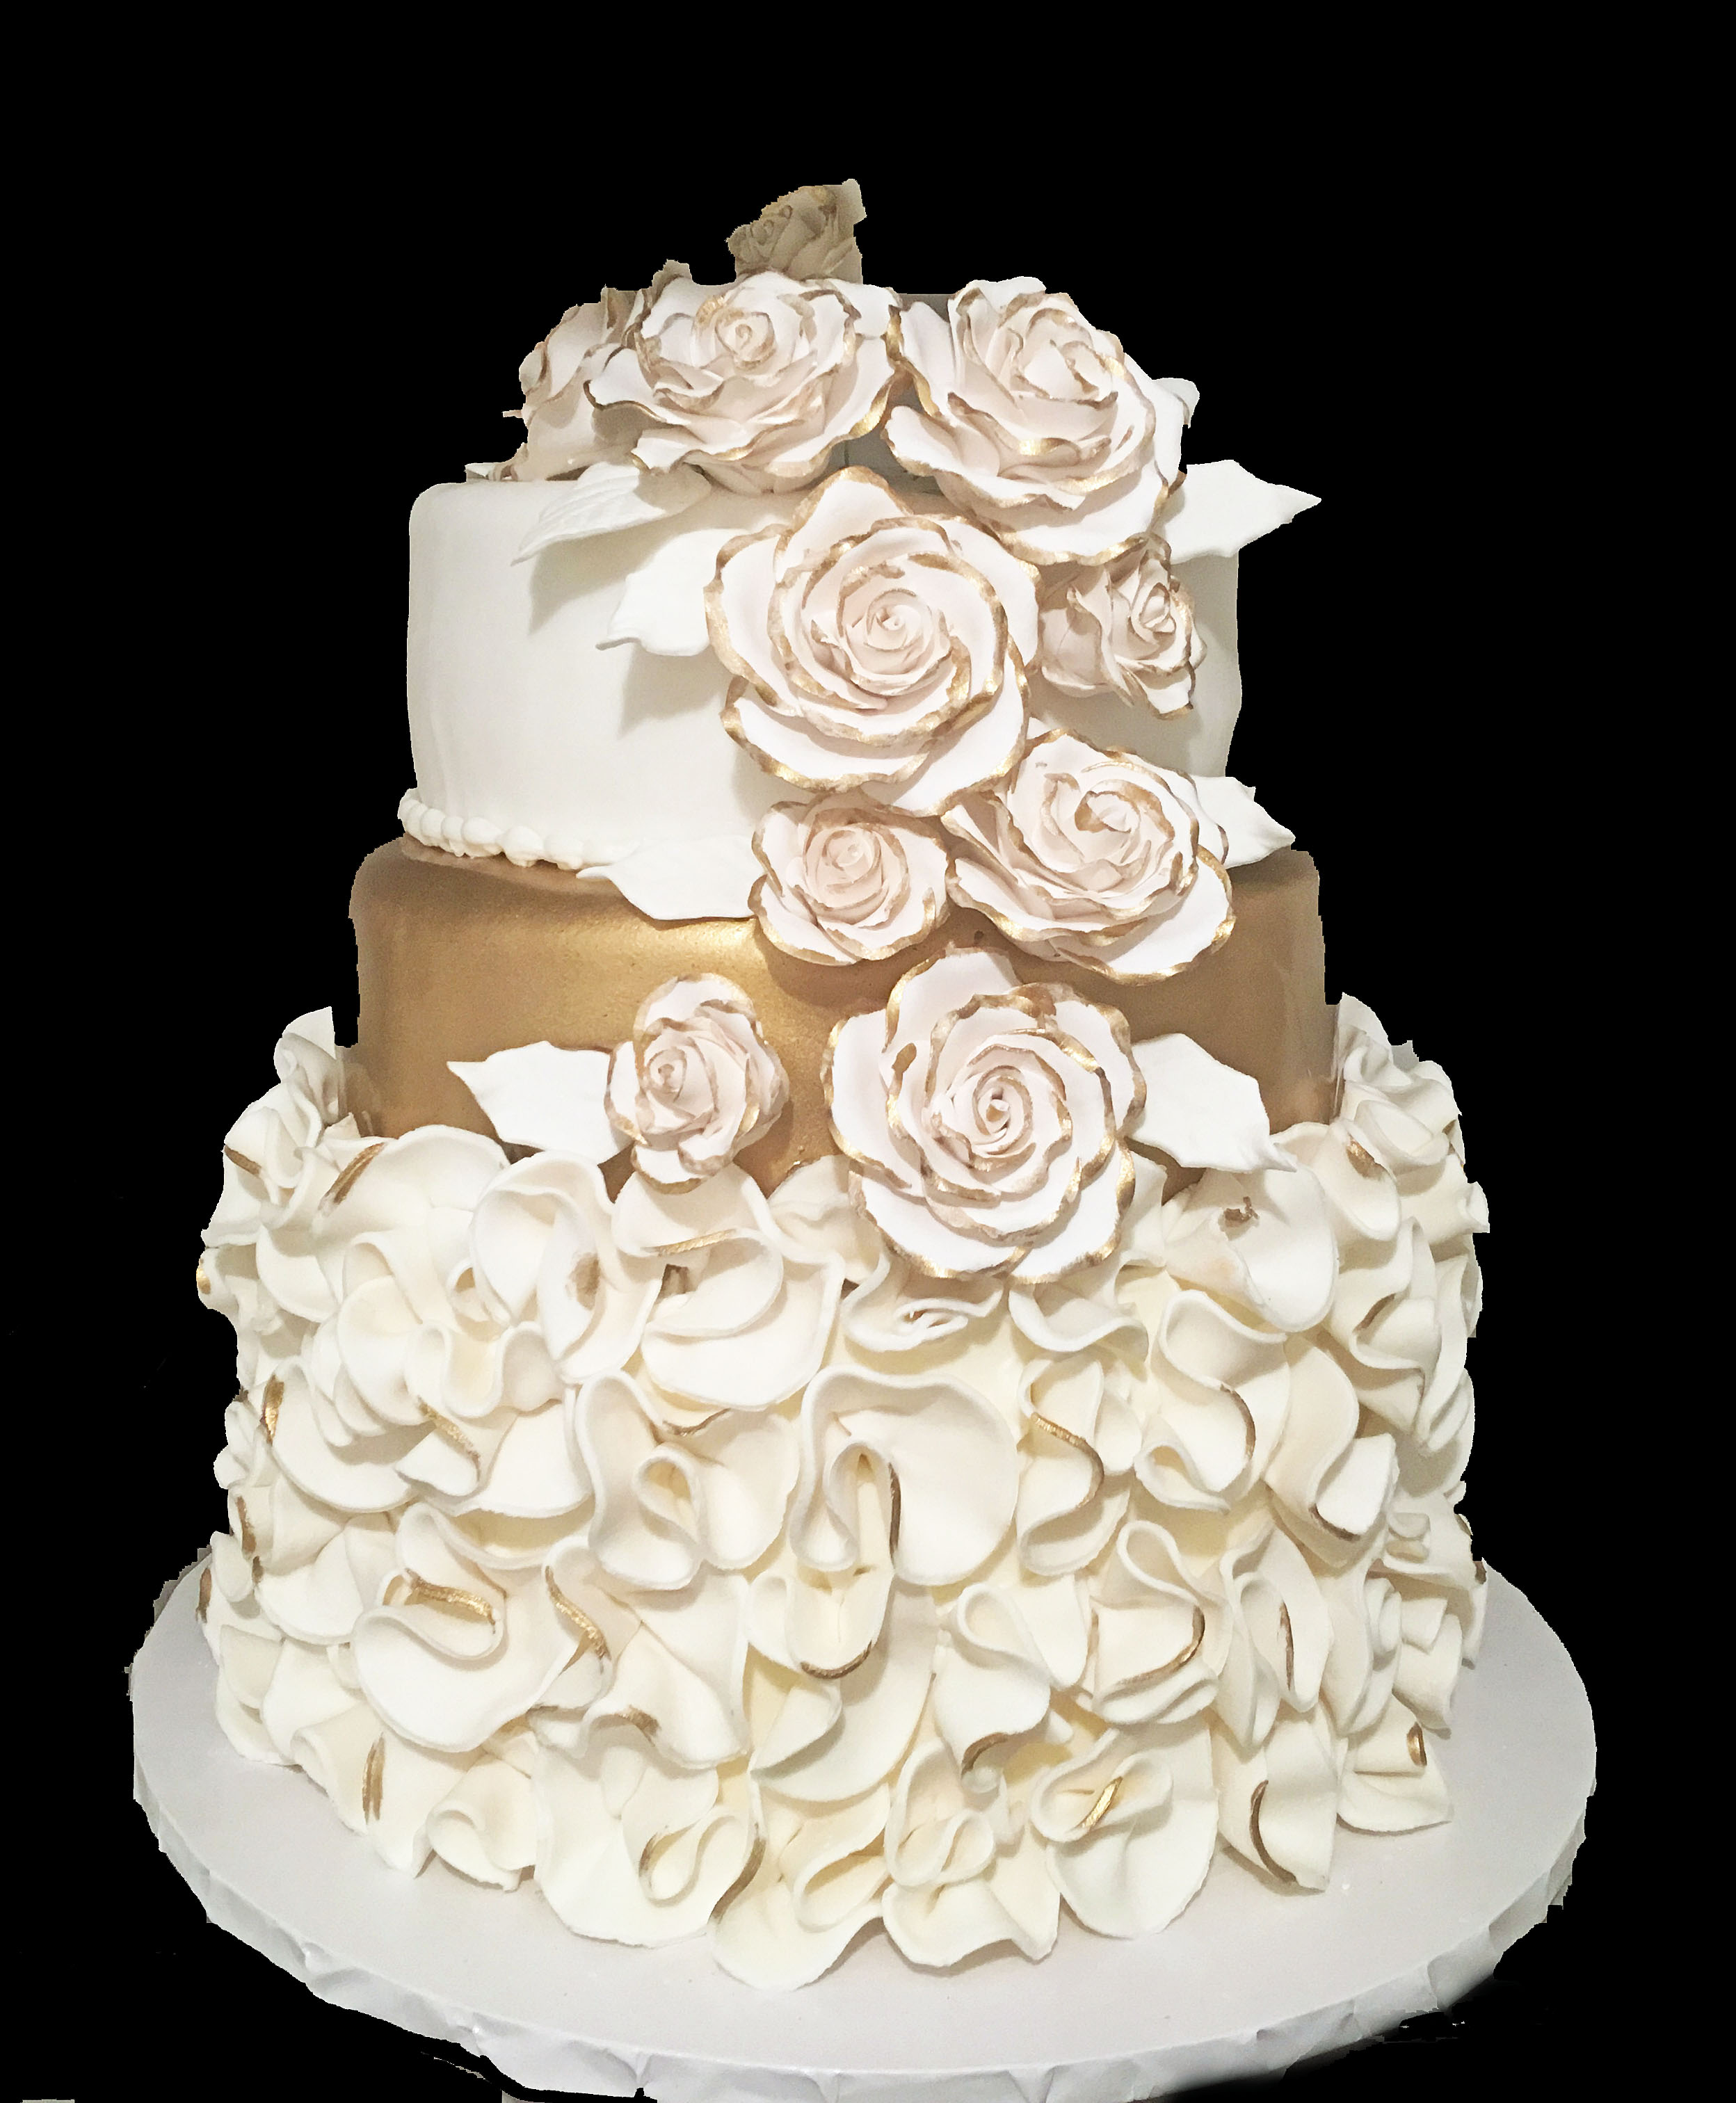 Rolled Fondant Scrunchies edged in Gold. Ribboned Rolled Fondant. Peonies Edged in Gold.jpg